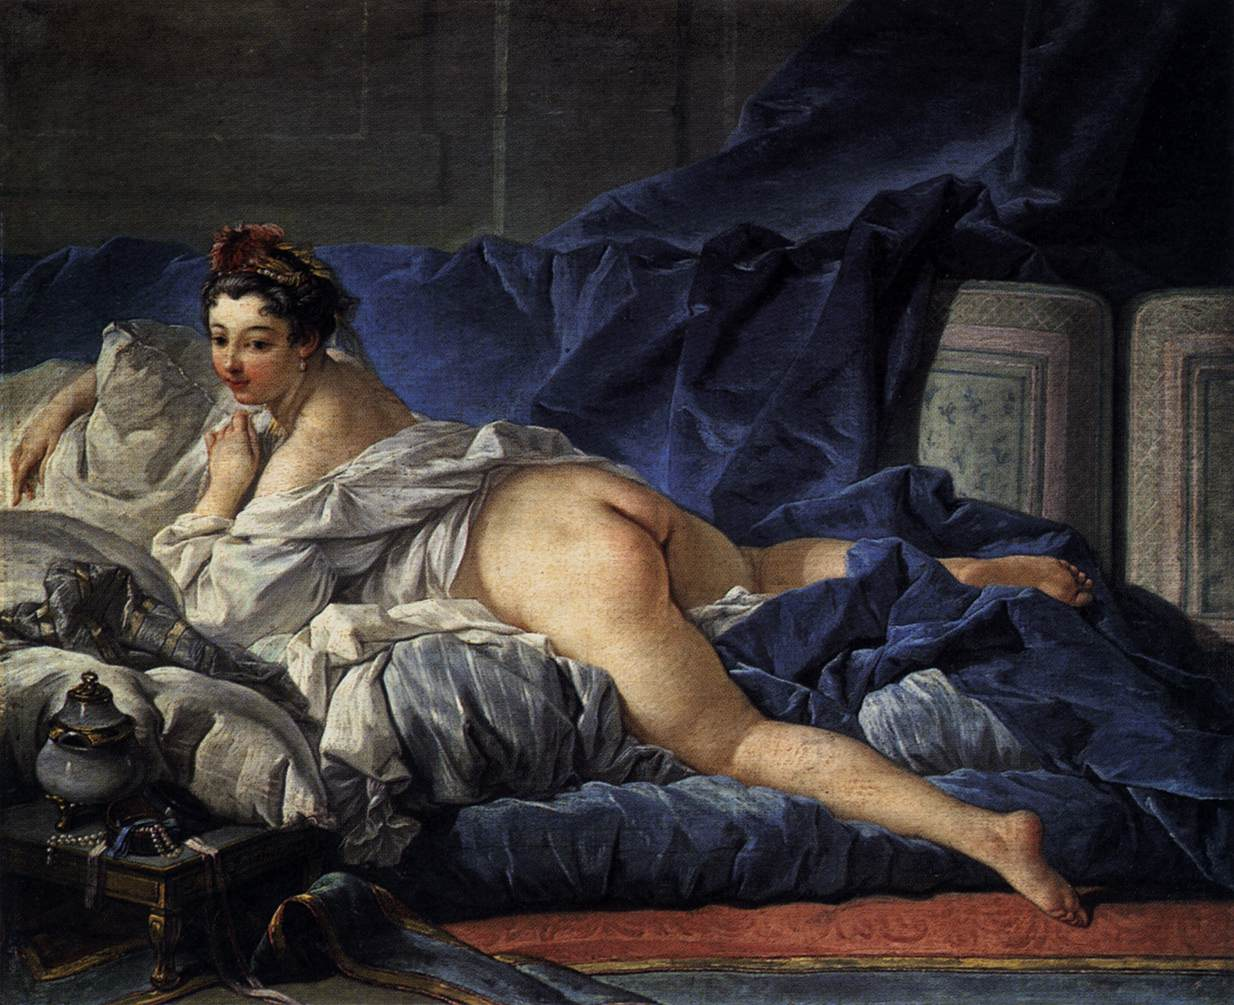 François Boucher's Brown Odalisque, one of the paintings that was depicted in the set of postcards that an art teacher in Utah showed his students on Dec. 4, 2017, leading to his firing.